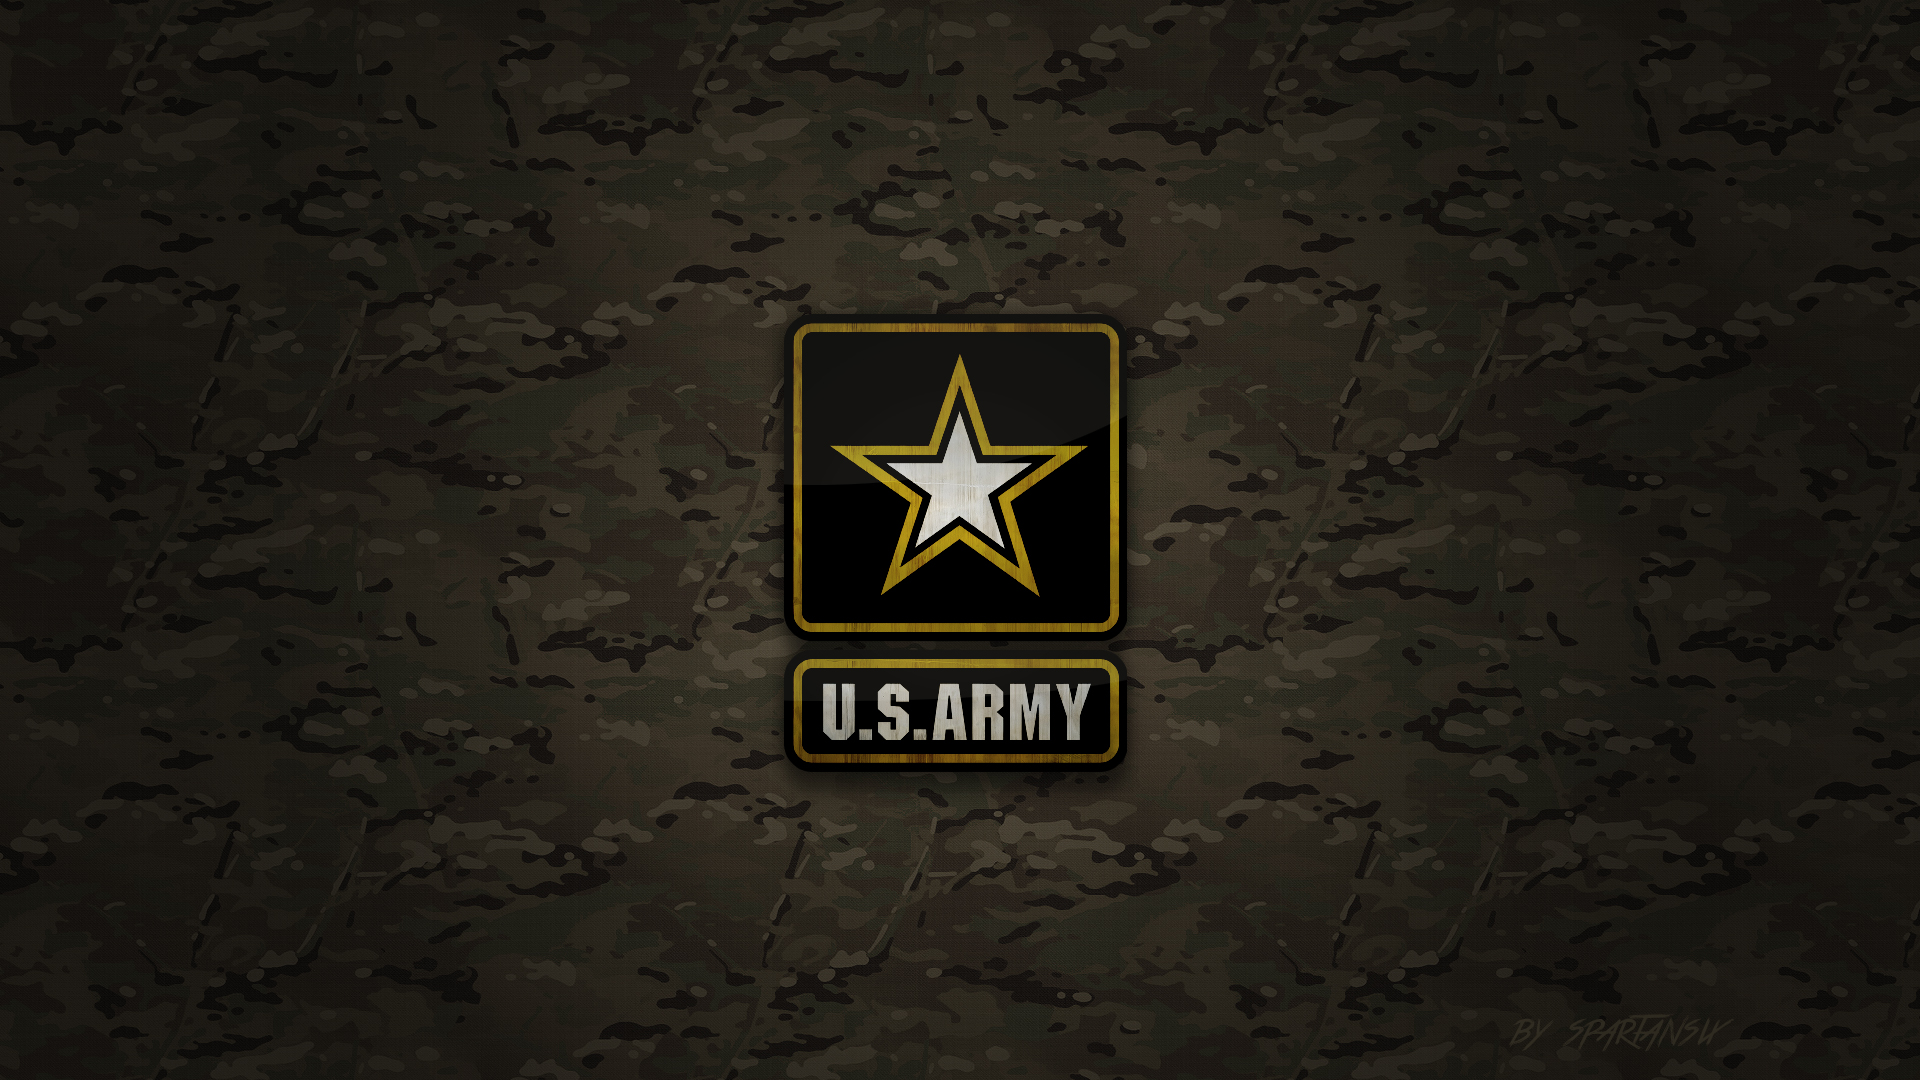 Awesome Background Pictures Army HQFX 26 Wallpapers 1920x1080